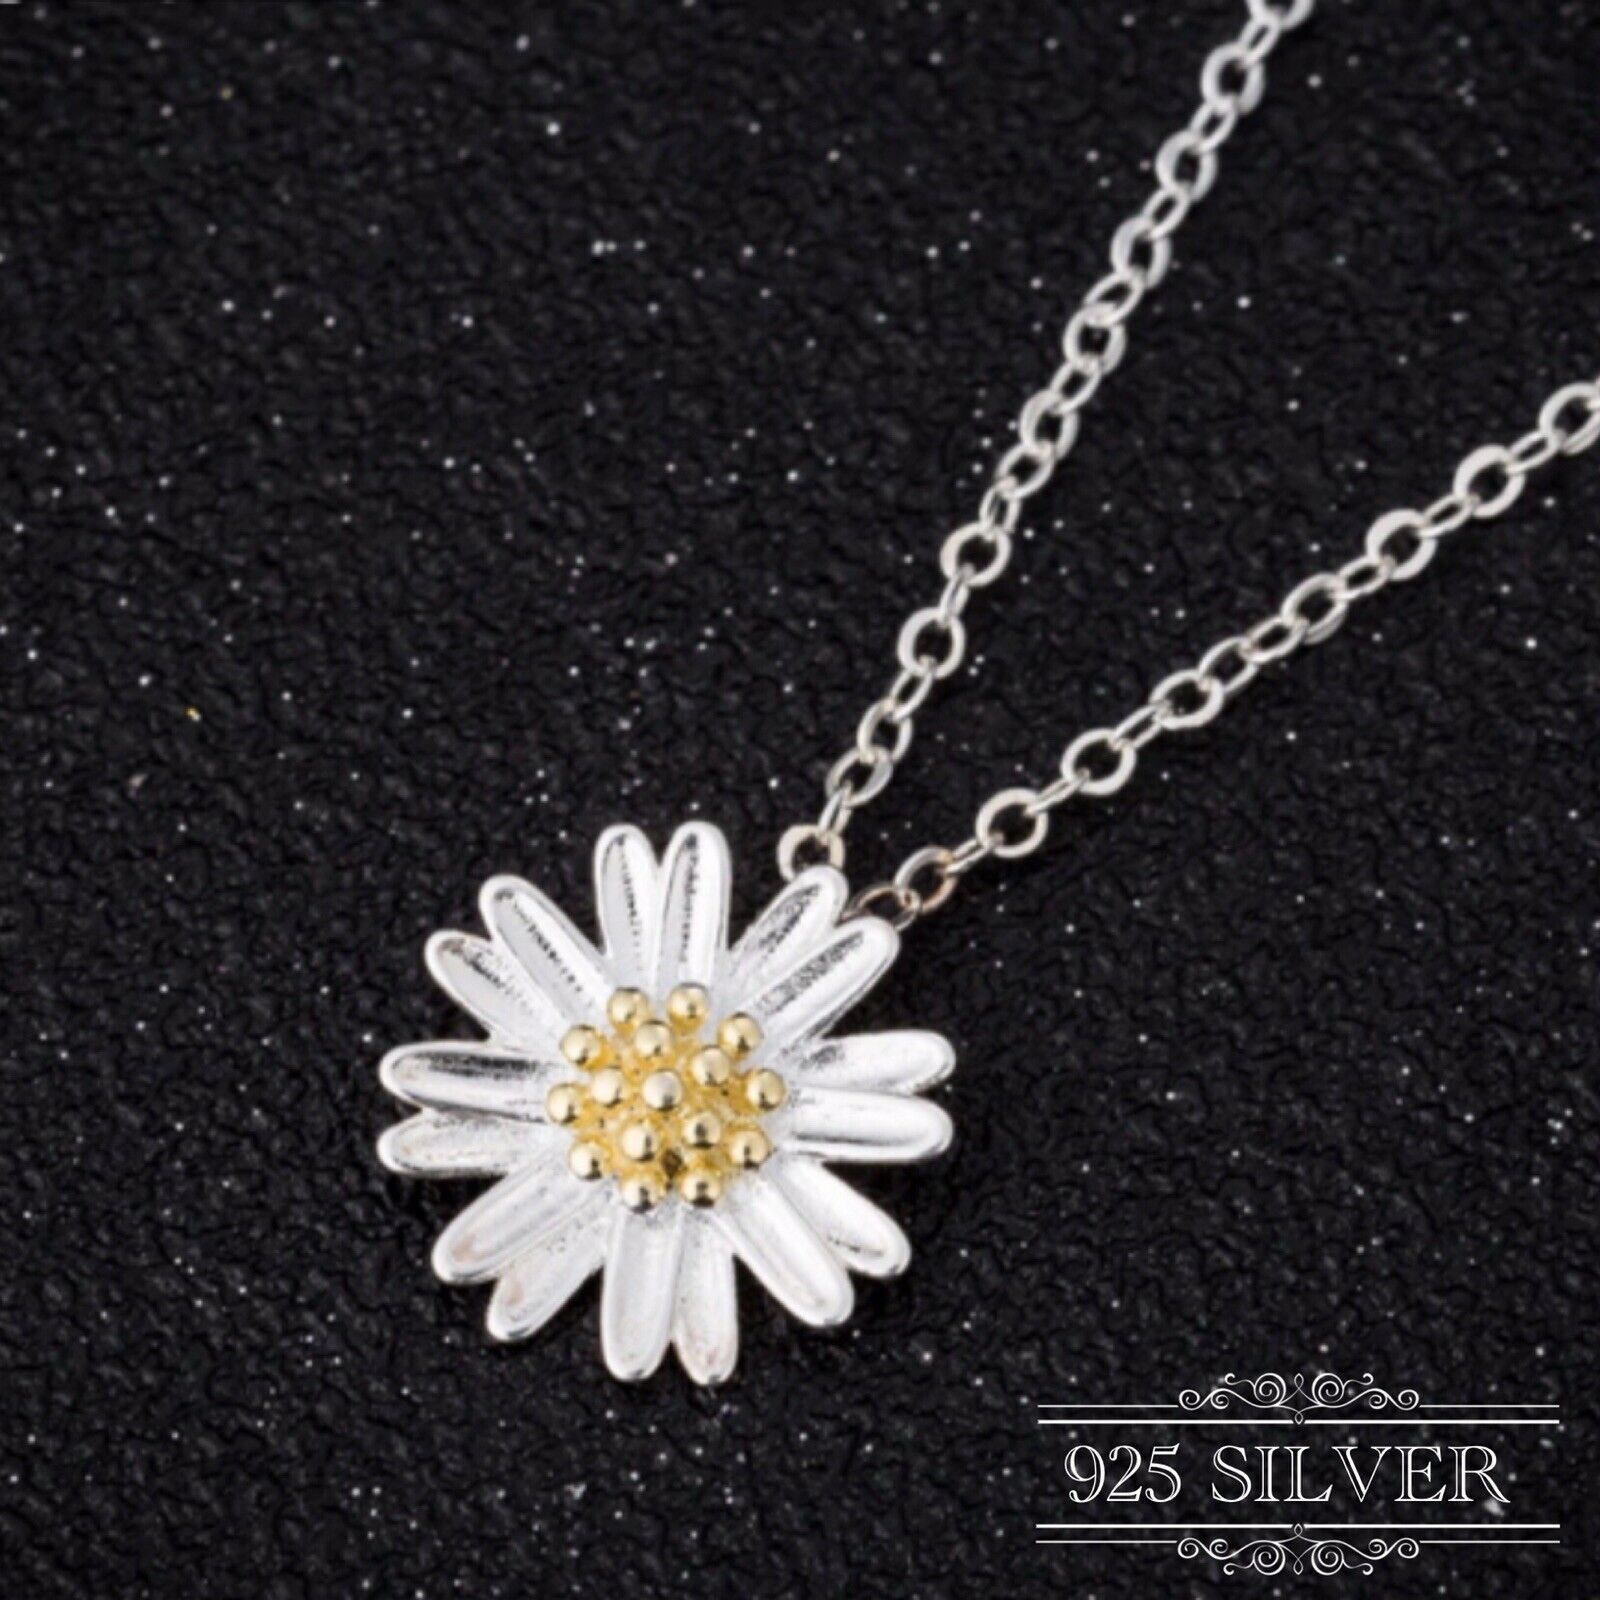 Jewellery - Daisy Pendant Necklace Silver 925 Sterling Sunflower Chain Flower Jewellery Lady